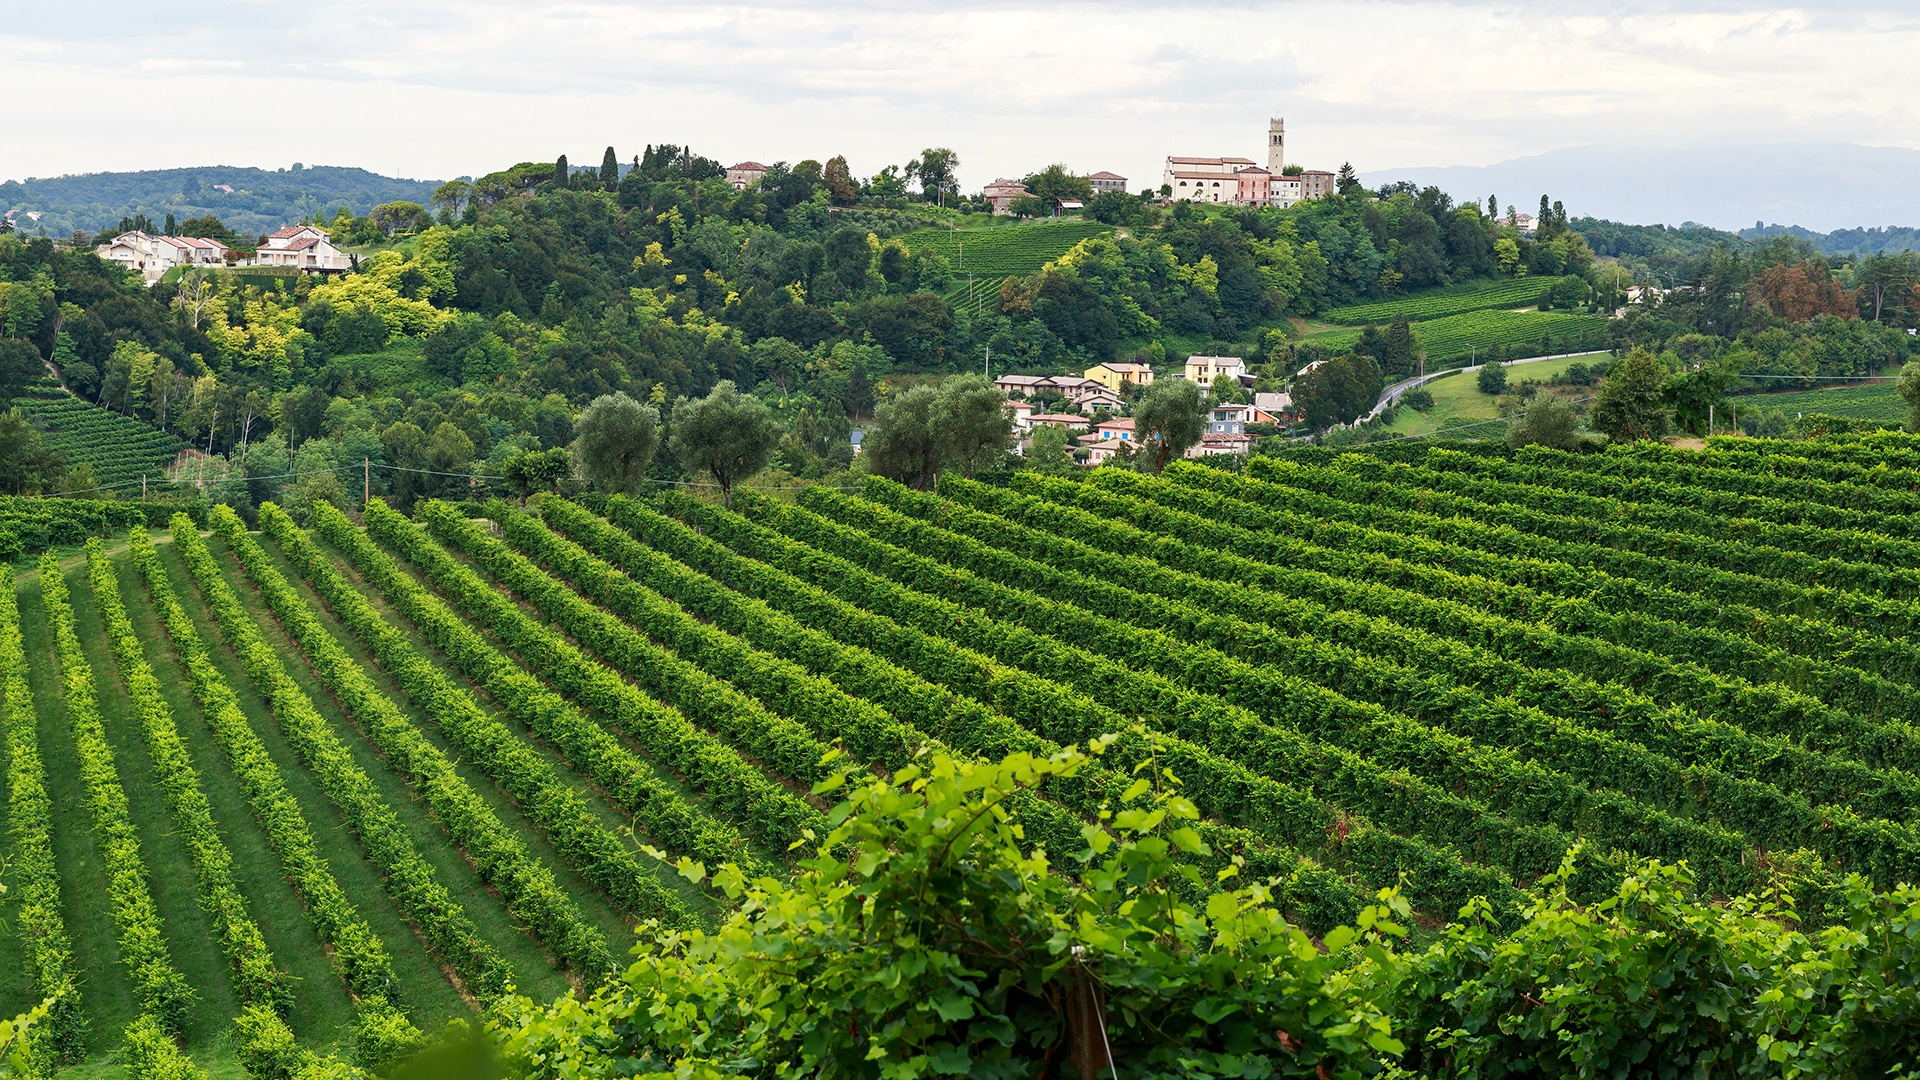 The vineyards of Treviso, Italy.